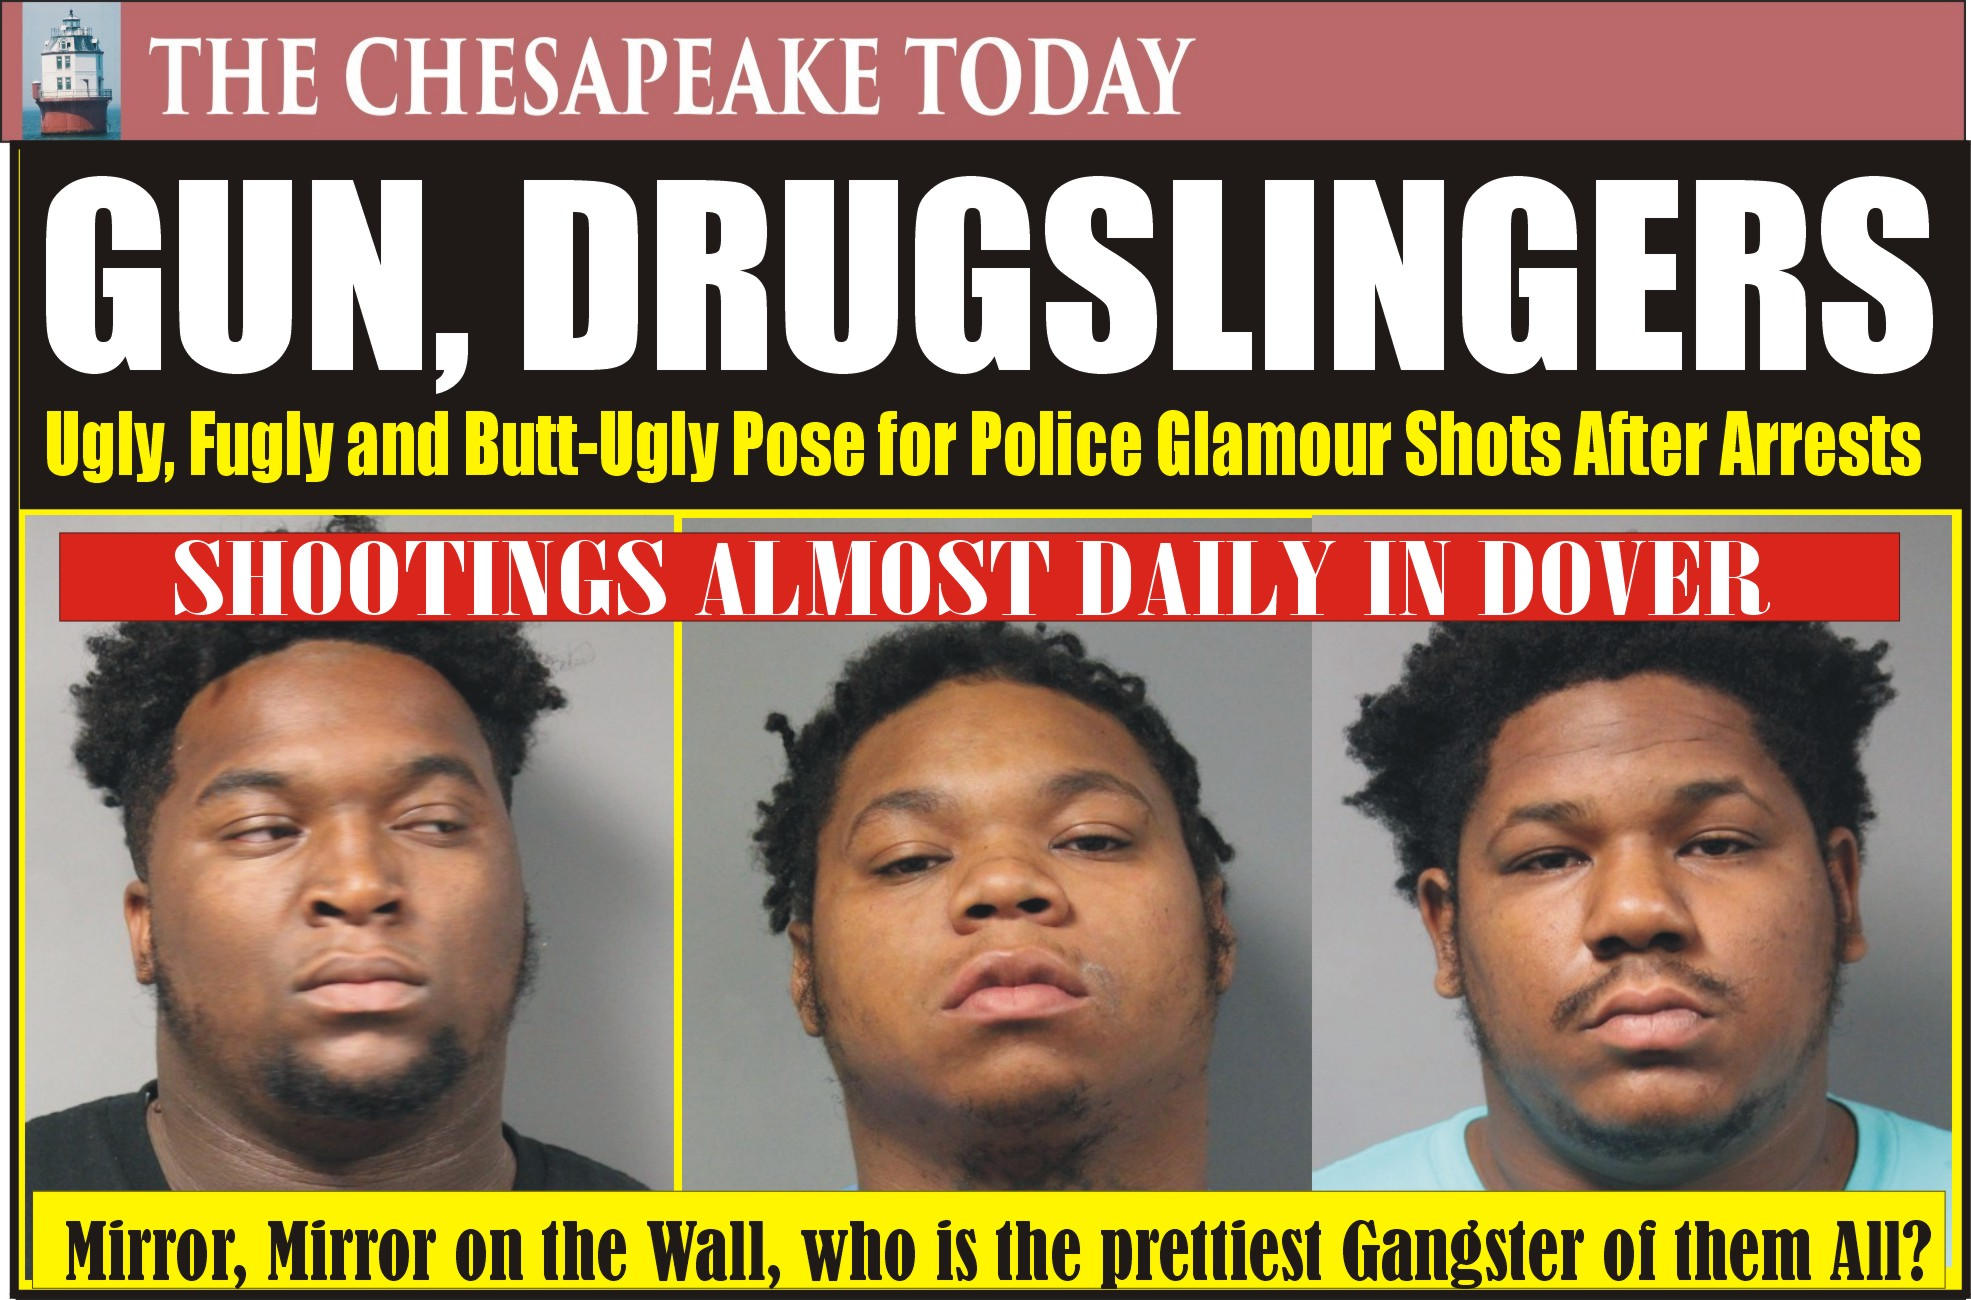 DOVER POLICE NEWS BEAT: Fugly and Ugly Joined by Butt-Ugly in Slammer for Guns and Drugs